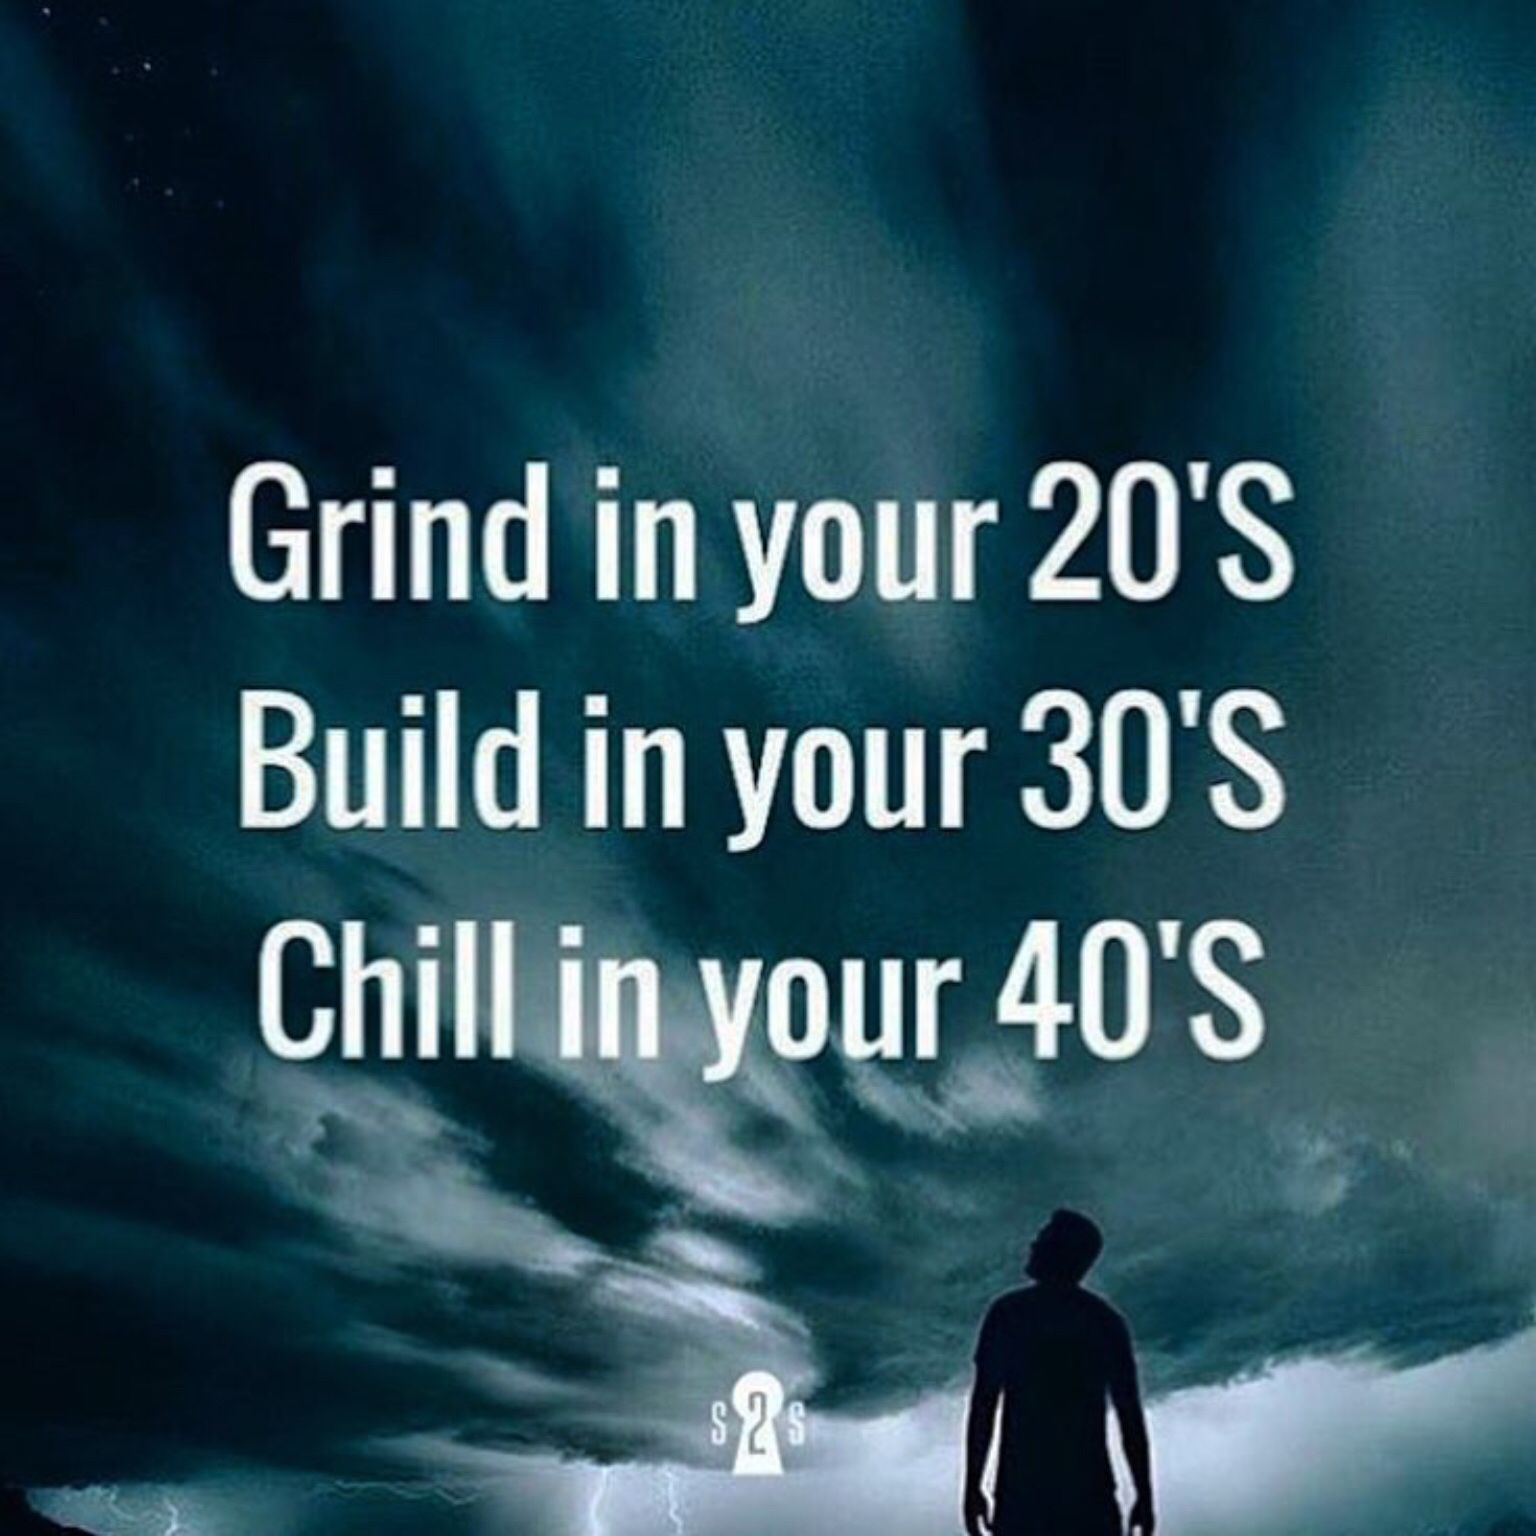 Grind in your 20s Build in your 30s Chill in your 40s | Quotes